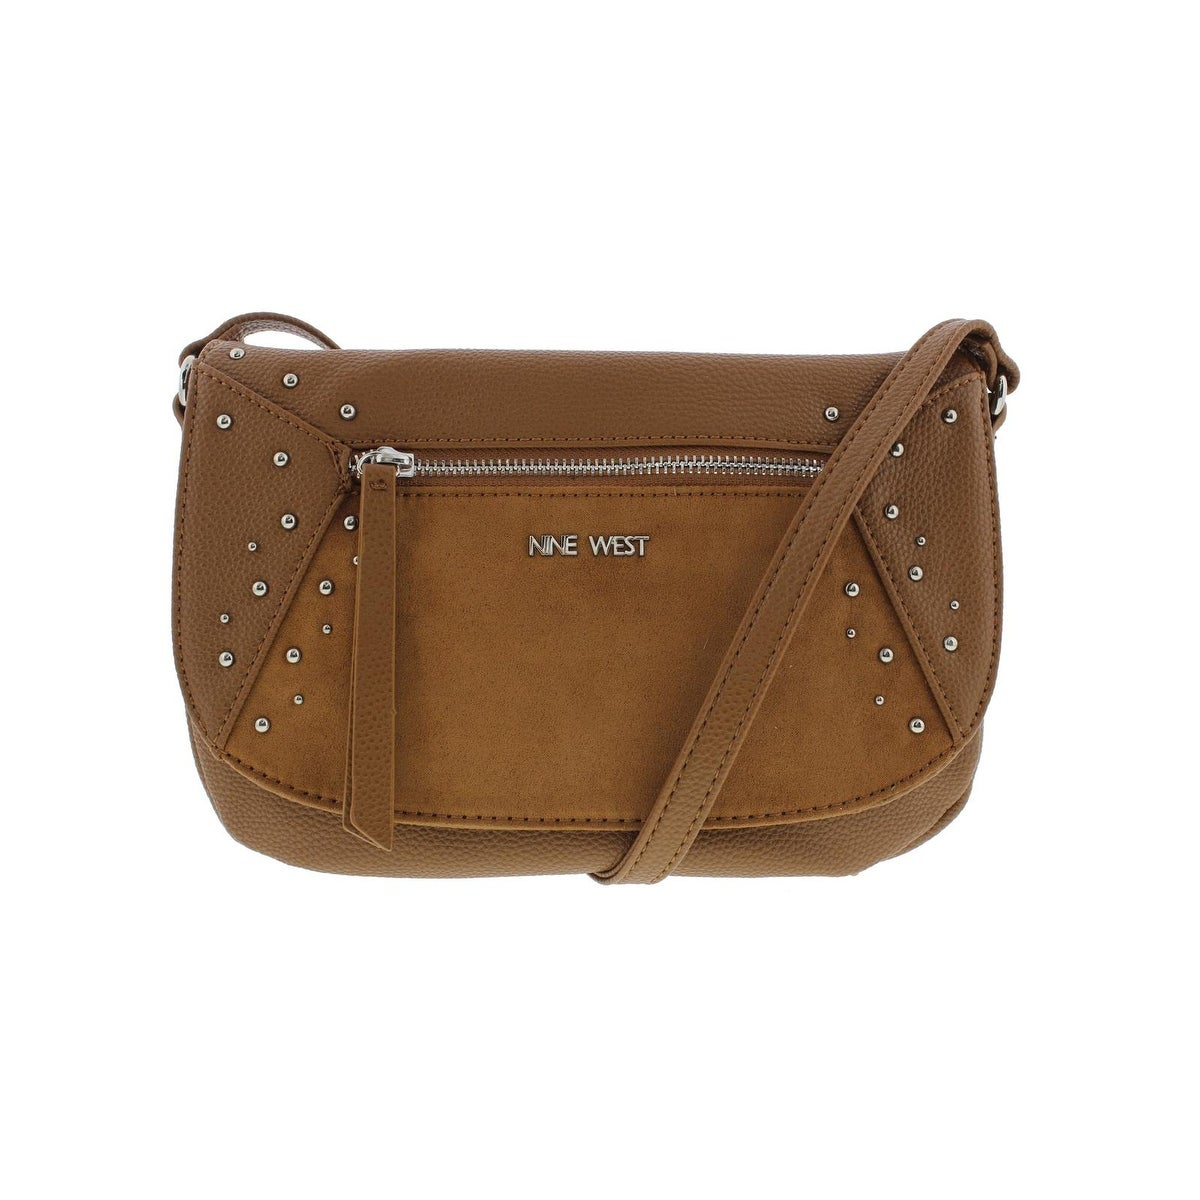 Nine West Womens Studded Star Crossbody Handbag Faux Leather Lined Small Free Shipping On Orders Over 45 14381066